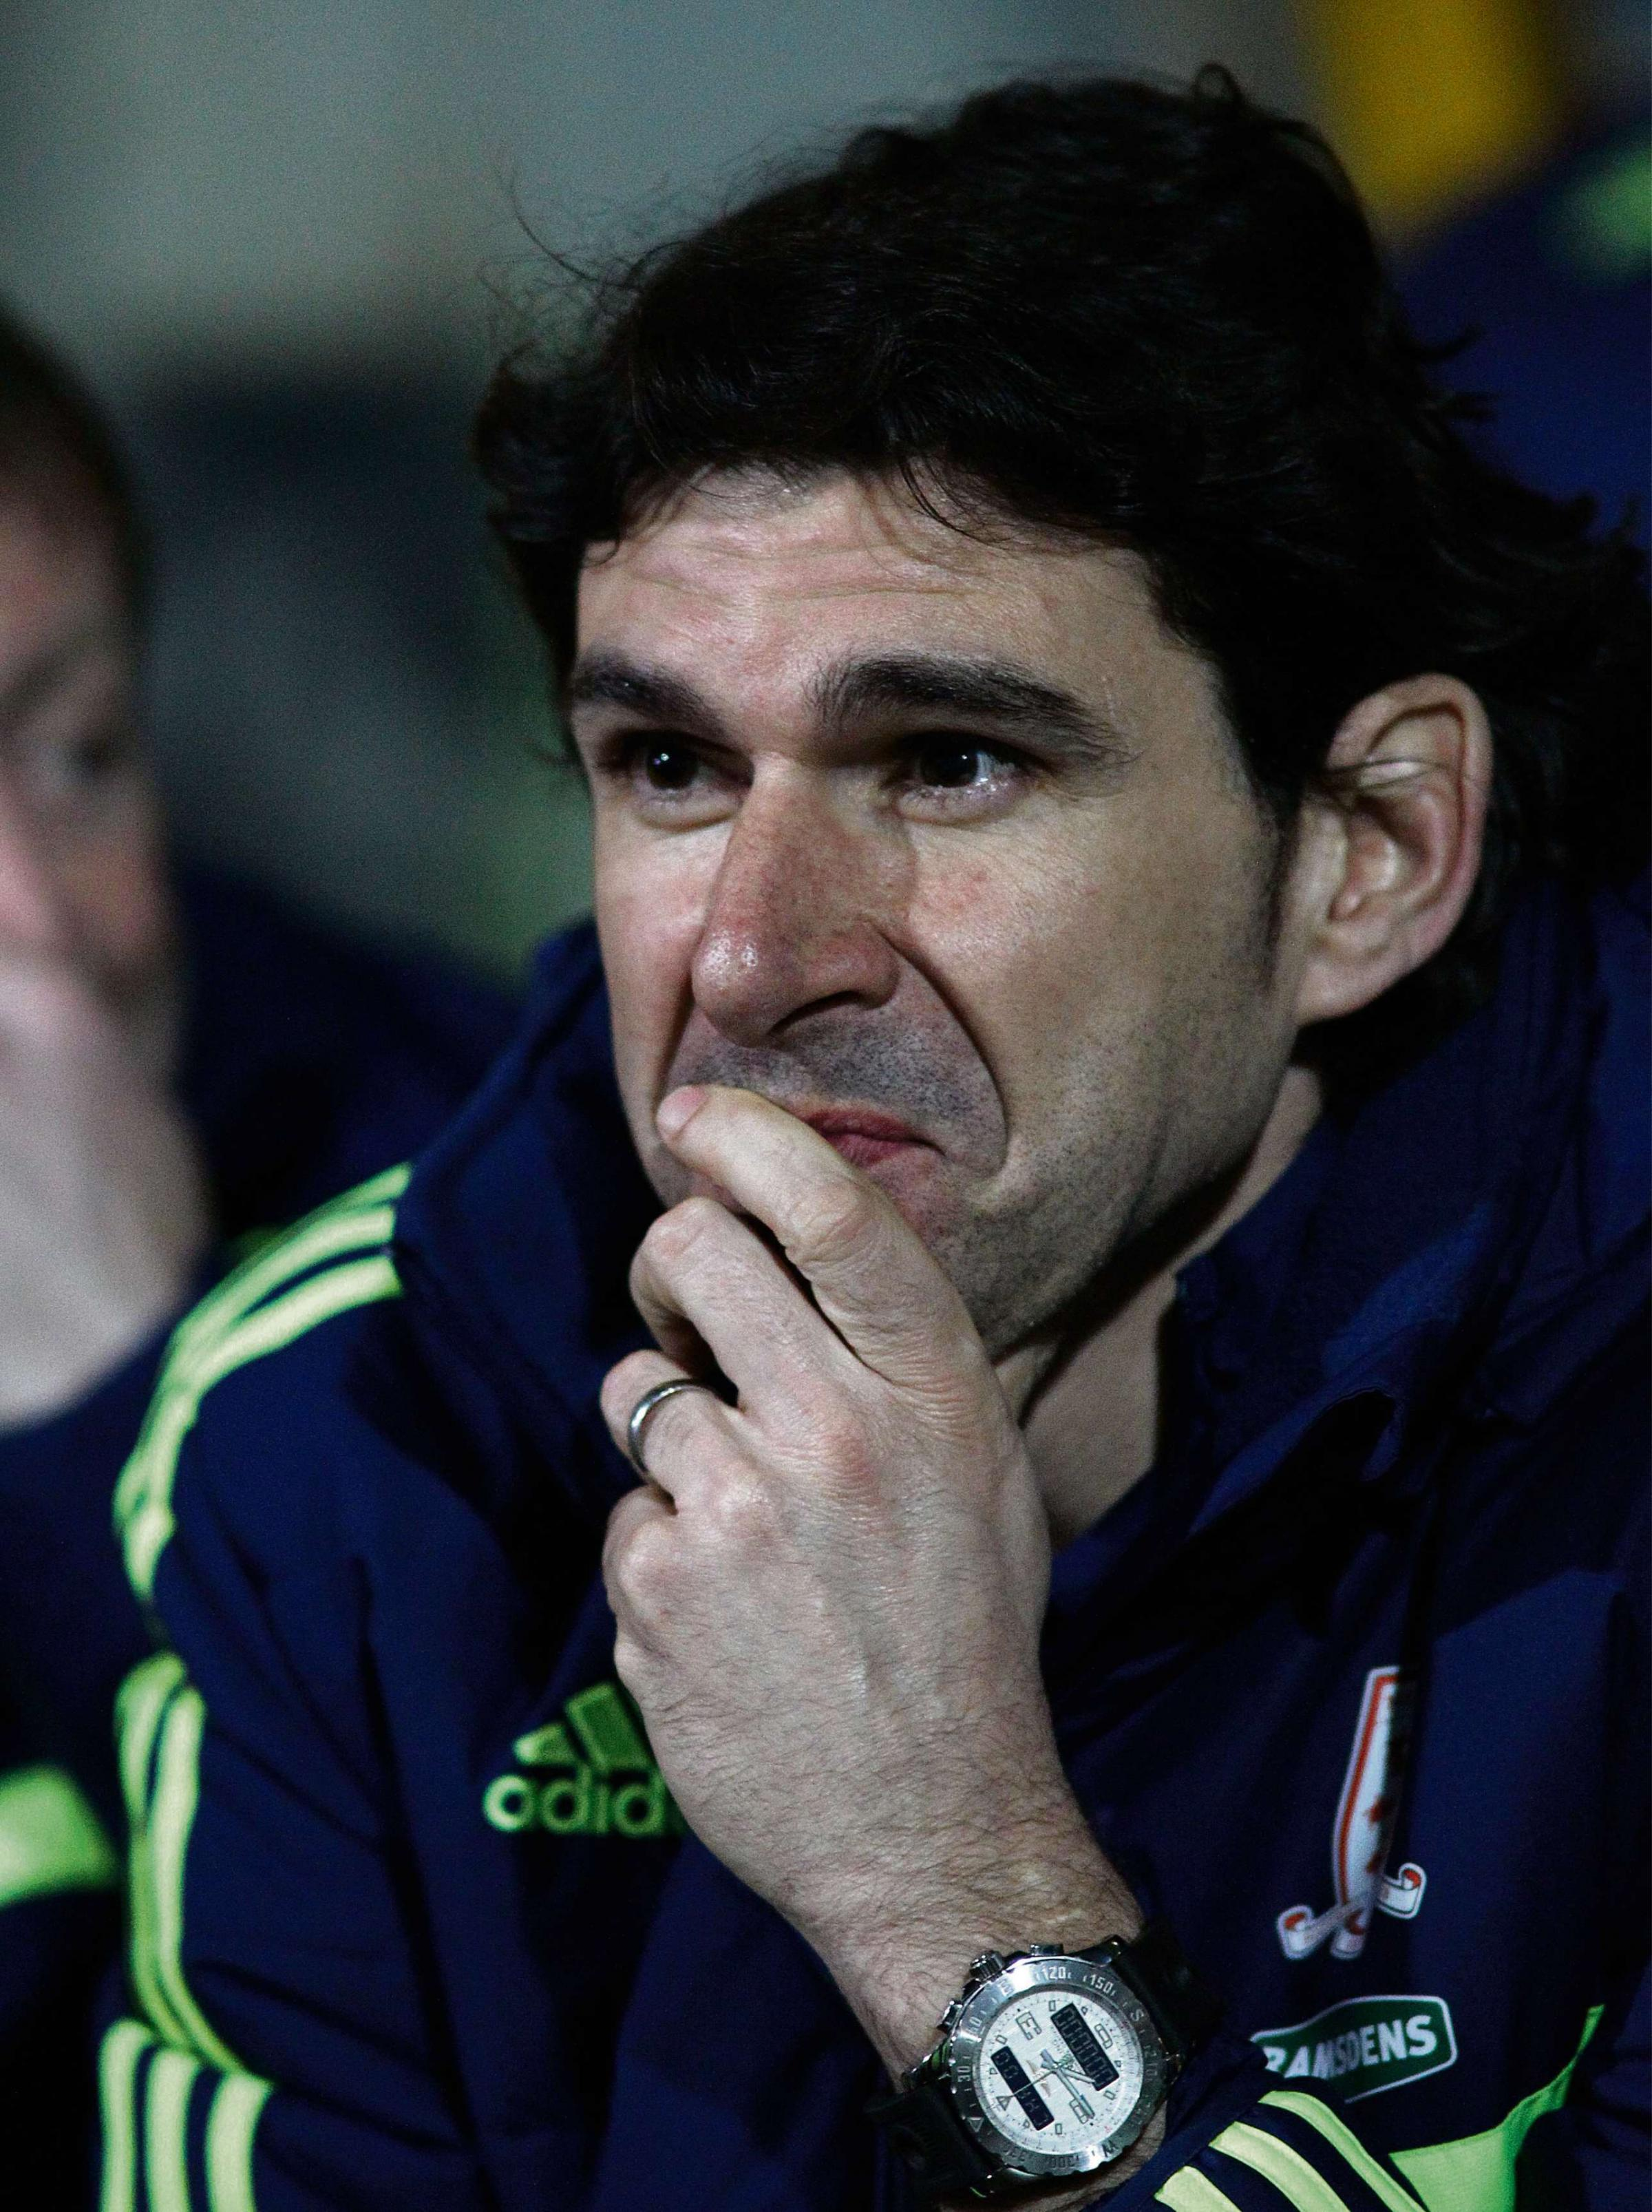 Middlesbrough's Manager Aitor Karanka. Huddersfield Town v Middlesbrough - Tuesday 25th March 2014 - The John Smith's Stadium - Huddersfield